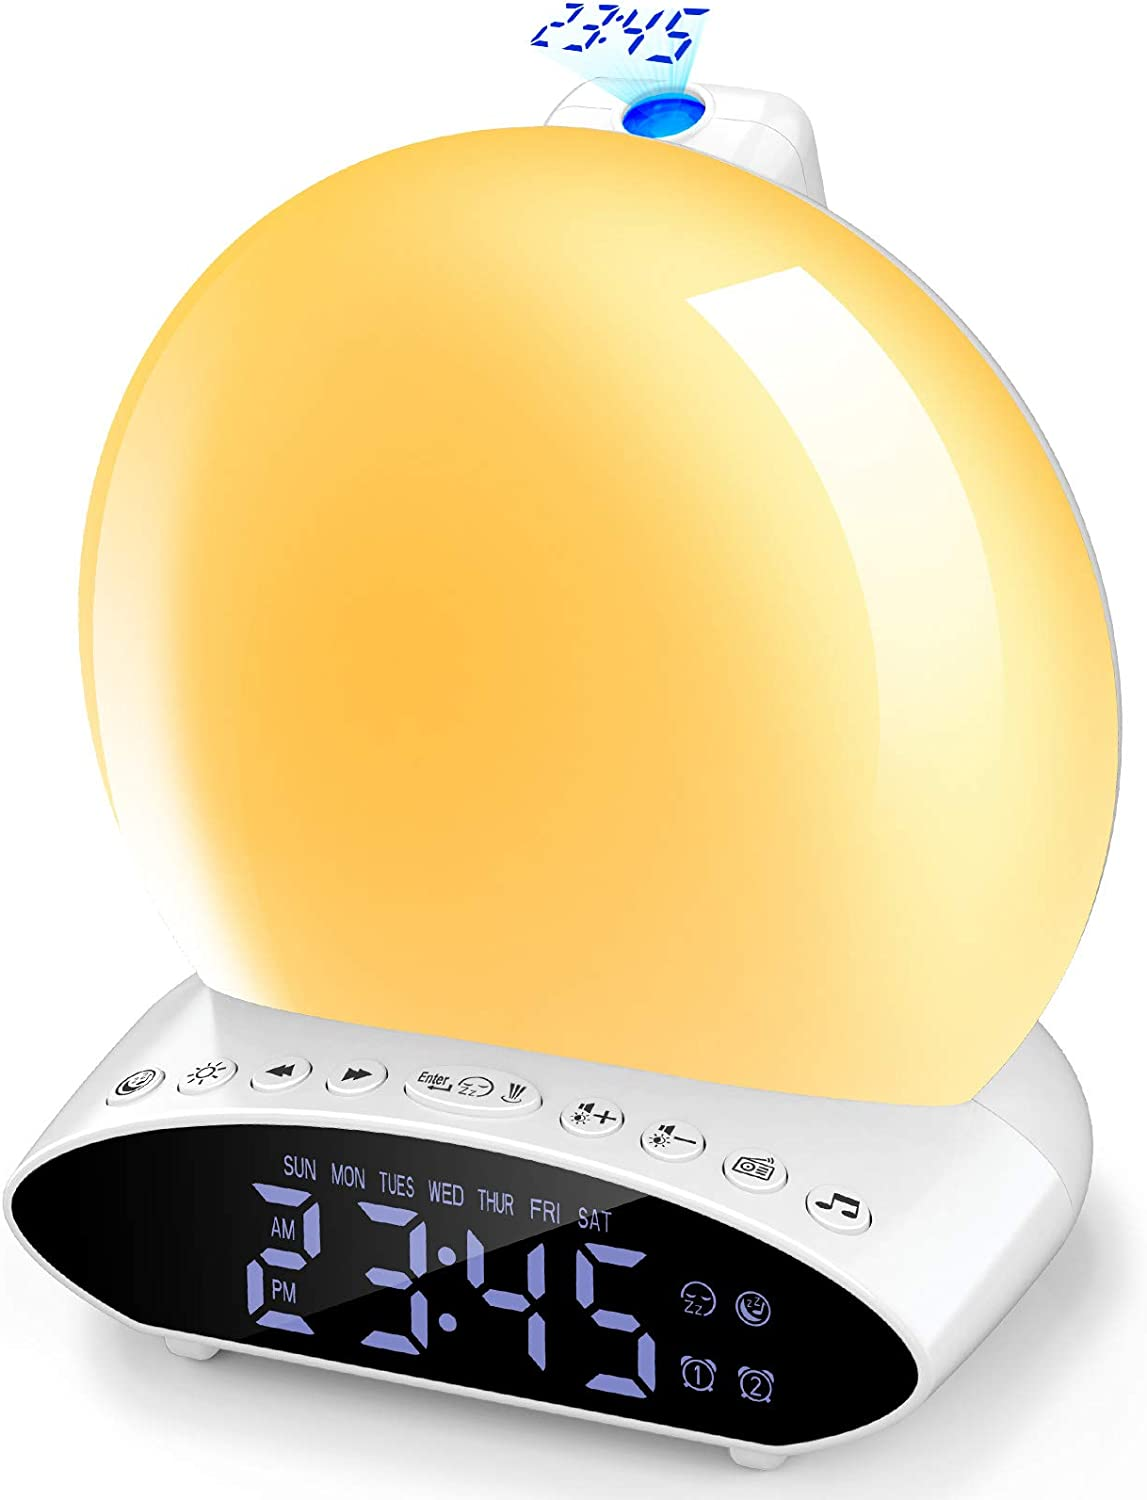 Sunrise Alarm Clock with Projection - Wake Up Light for Kids, Sunlight Radio Clocks Bedrooms,Heavy Sleepers Dual Alarms,Snooze ,FM Radio,7 Colors ,20 Natural Sounds